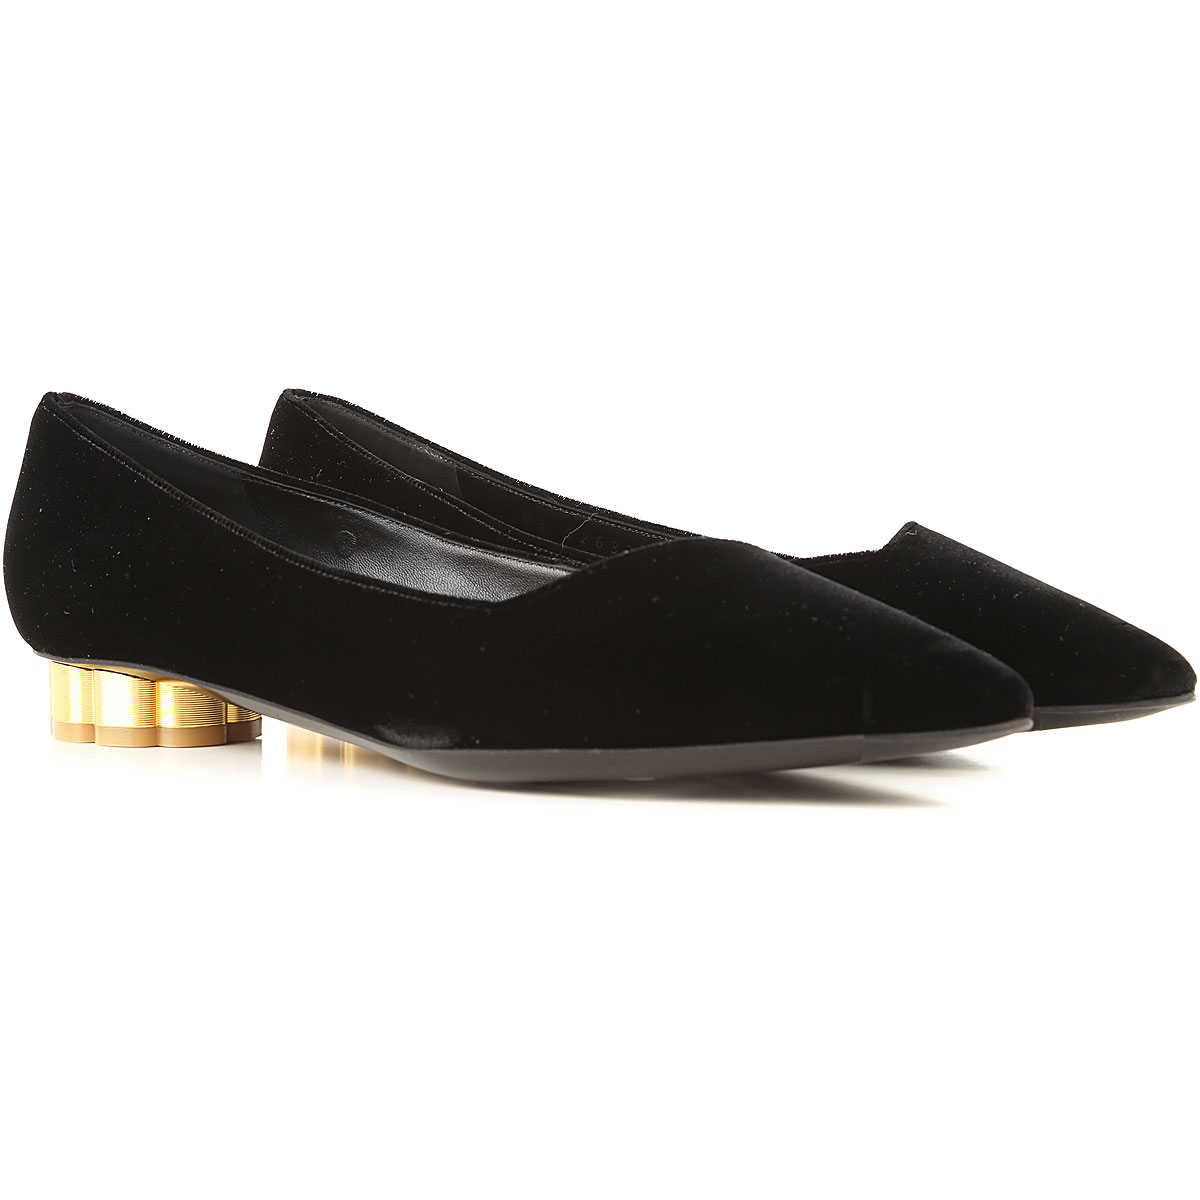 Salvatore Ferragamo Ballet Flats Ballerina Shoes for Women On Sale in Outlet